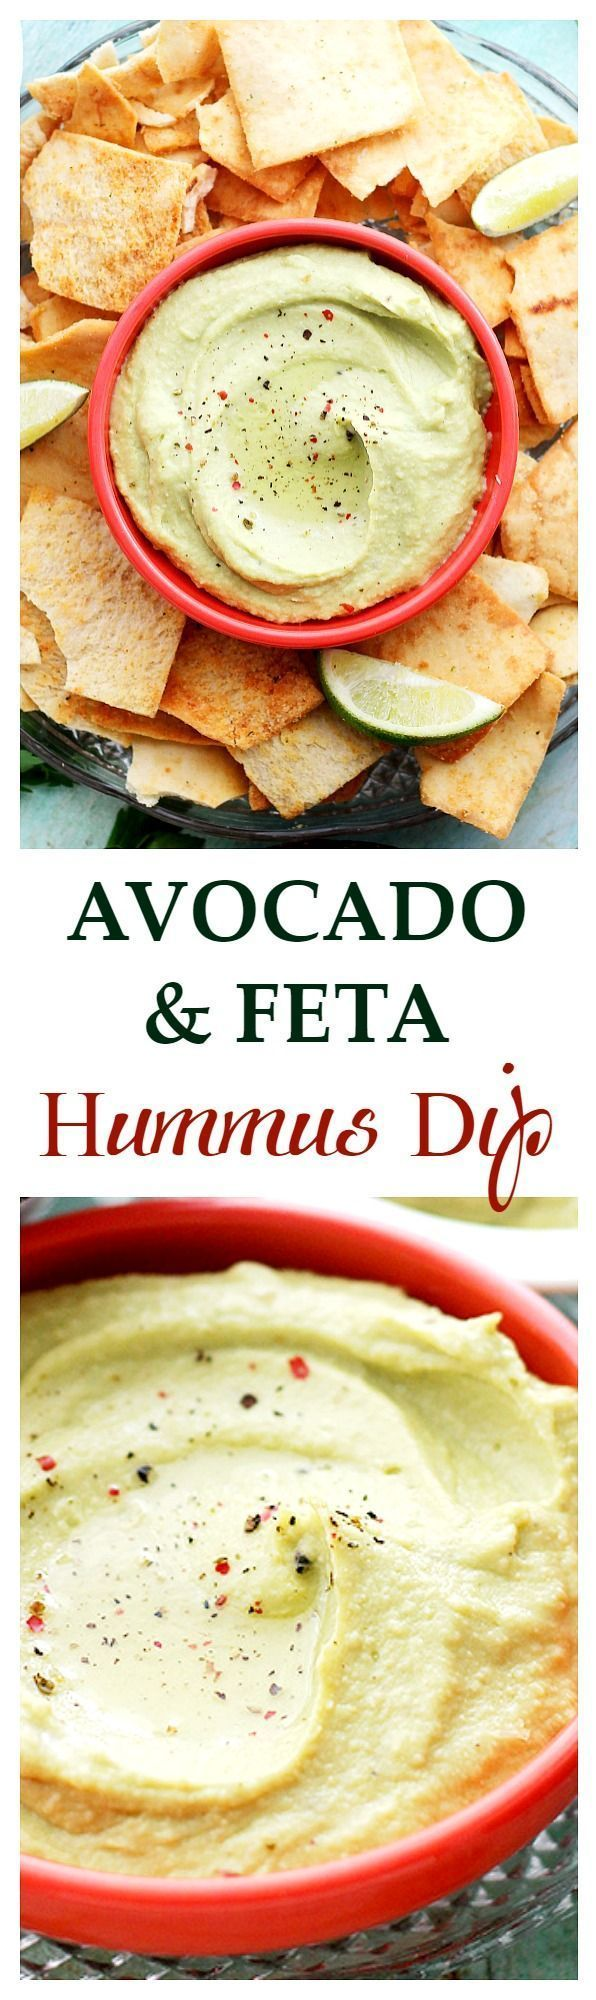 Avocado and Feta Hummus Dip ~ This snack has all your cravings covered ...